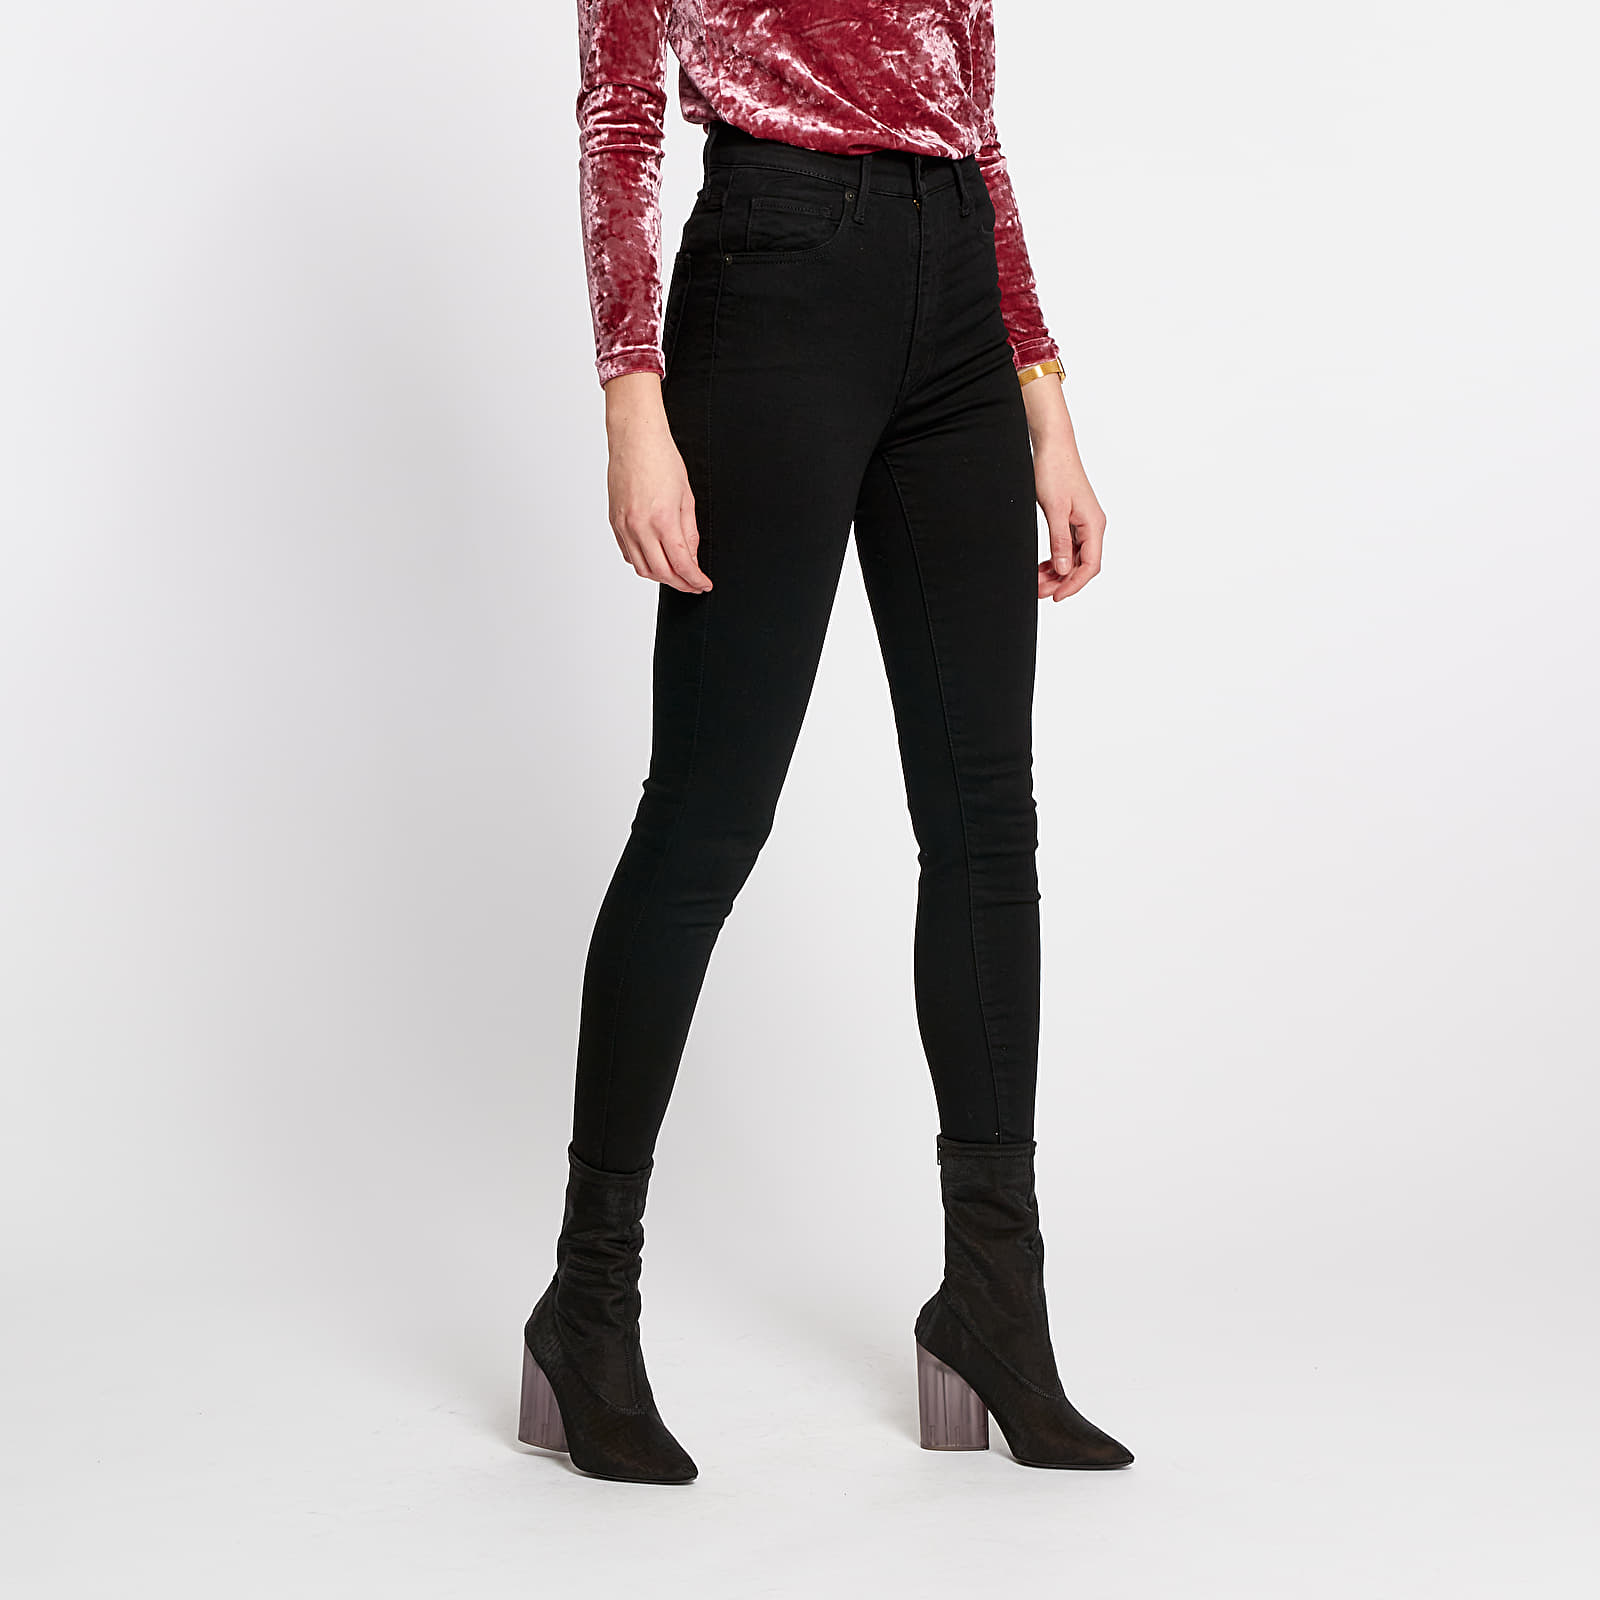 Pants and jeans Levi's Mile High Super Skinny Jeans Black